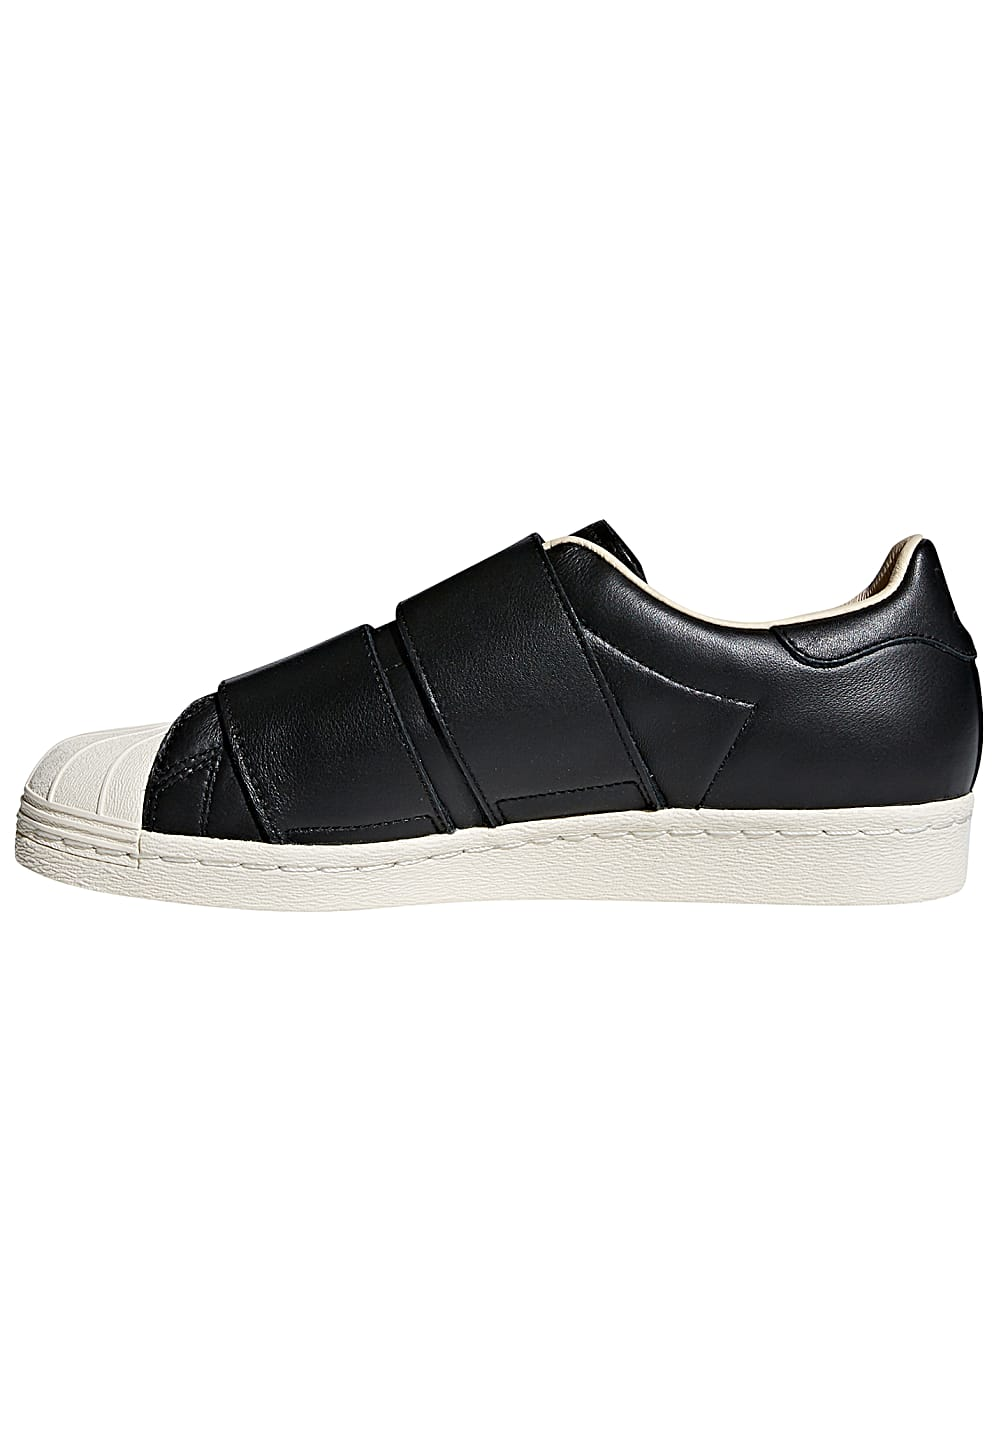 new concept e3a0a ba3ea Next. This product is currently out of stock. ADIDAS ORIGINALS. Superstar  80s Cf - Sneakers for Women